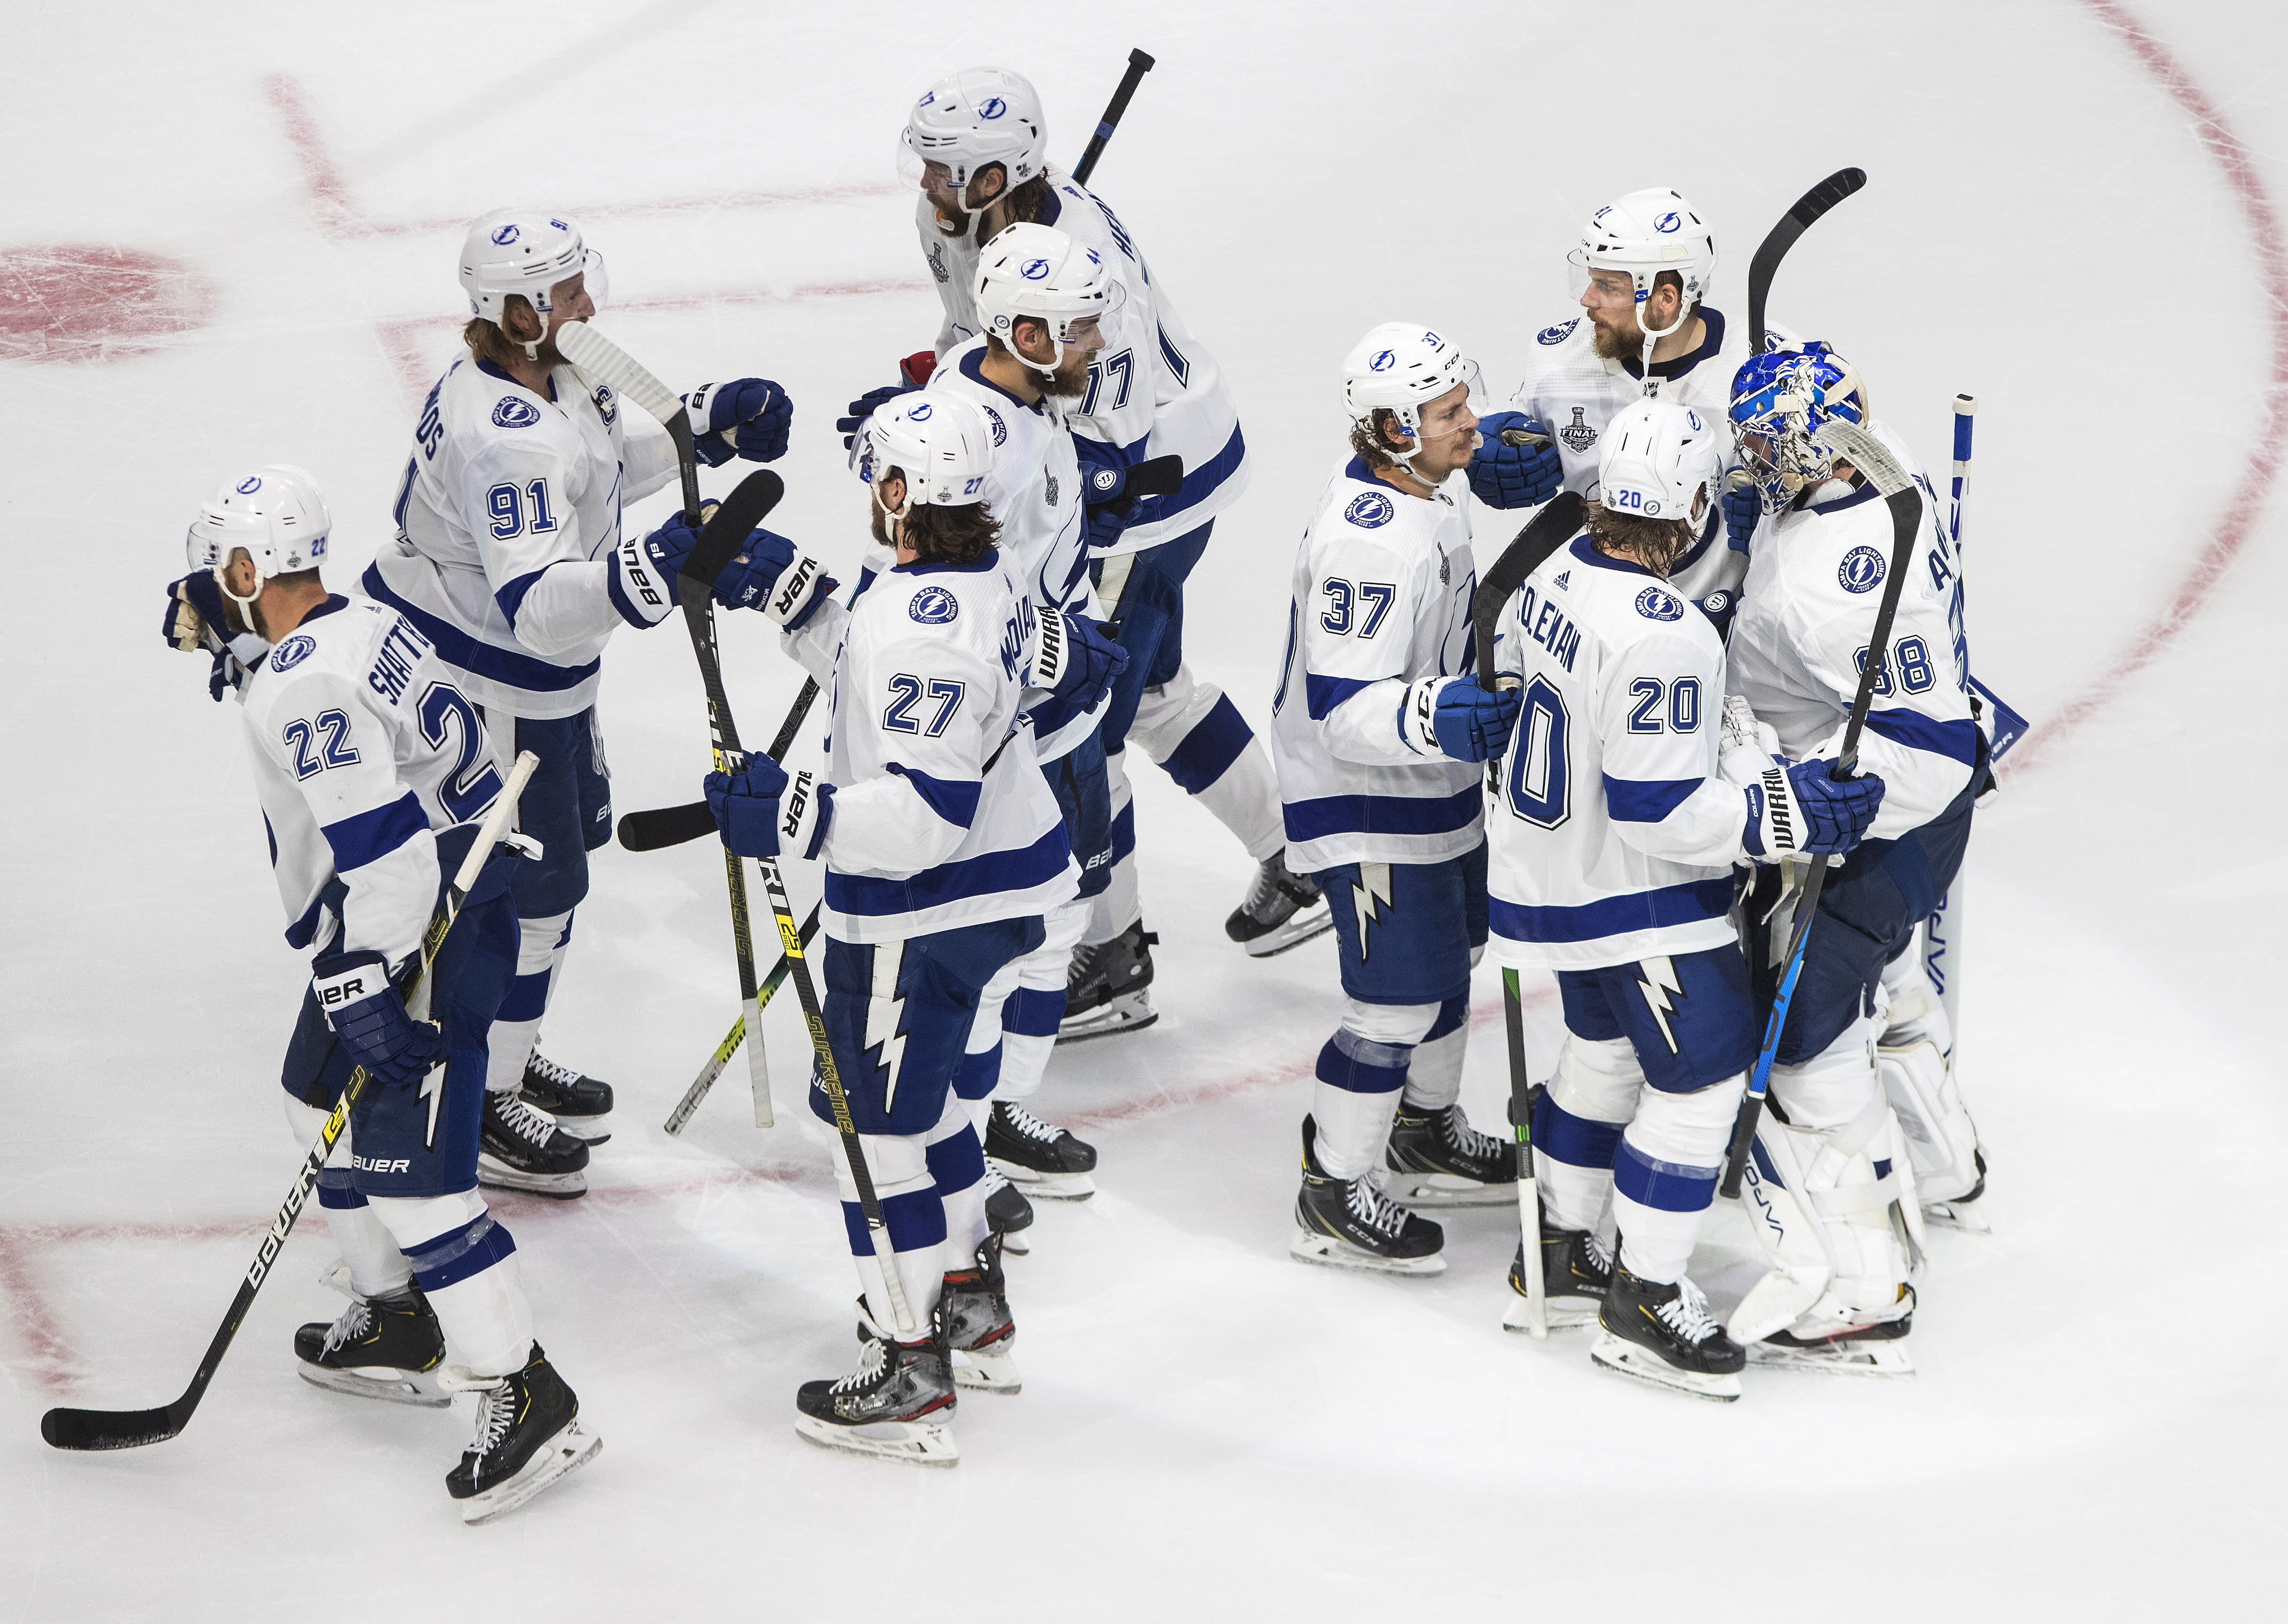 Tampa Bay Lightning players celebrate a win over the Dallas Stars in Game 3 of the NHL hockey Stanley Cup Final, Wednesday, Sept. 23, 2020, in Edmonton, Alberta. (Jason Franson/The Canadian Press via AP)